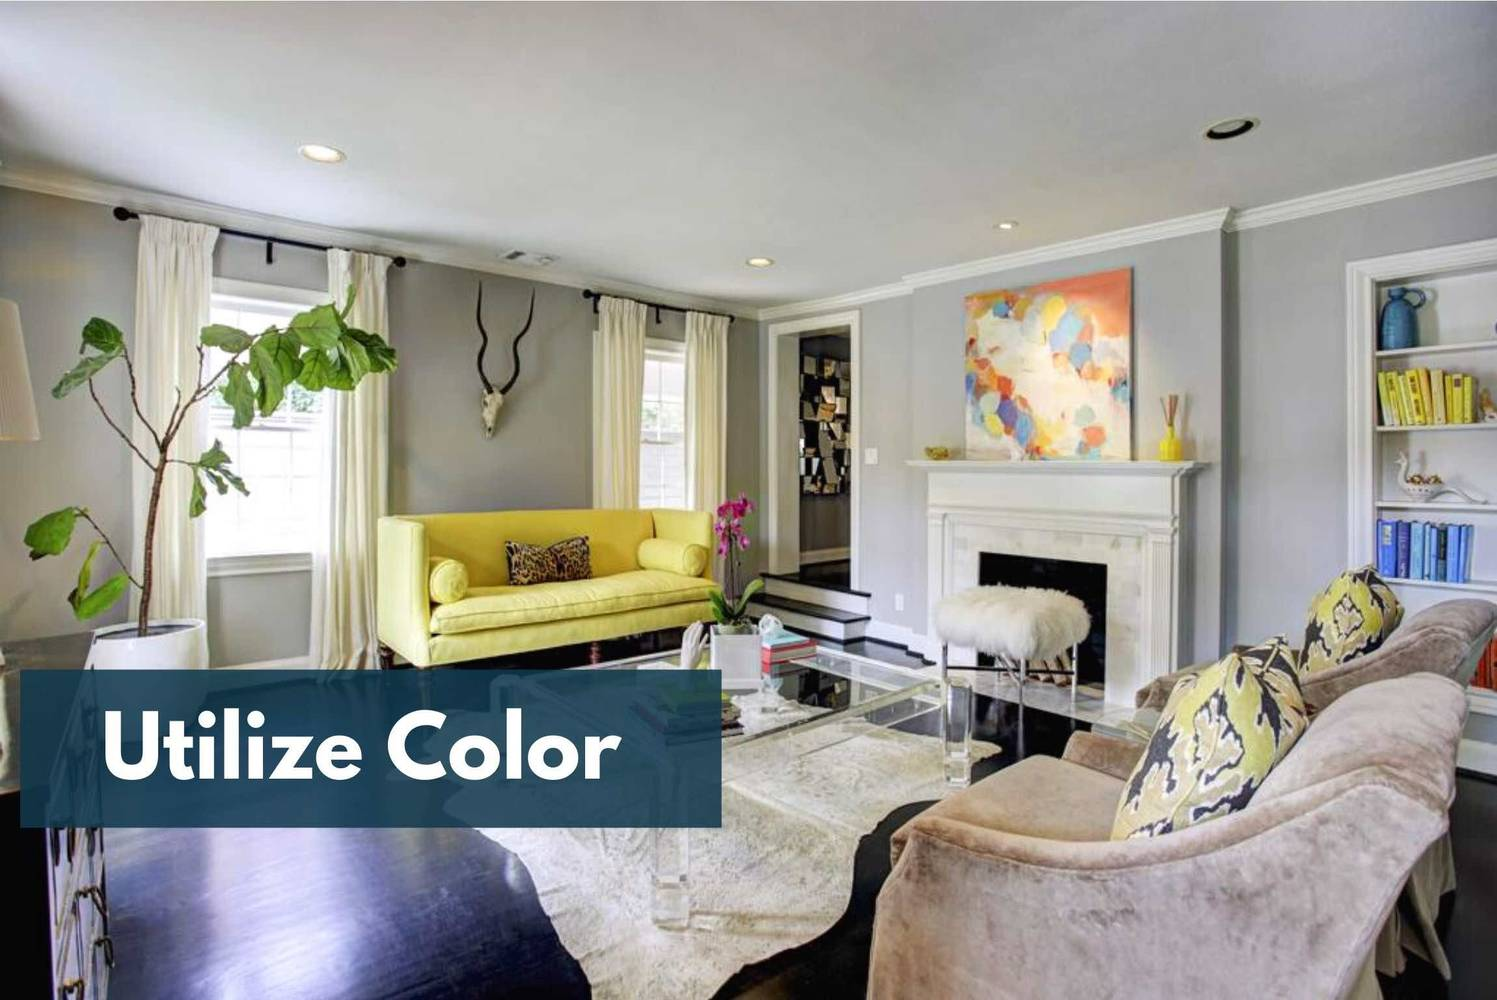 Houston Home Staging Ideas: Use Colors To Your Advantage